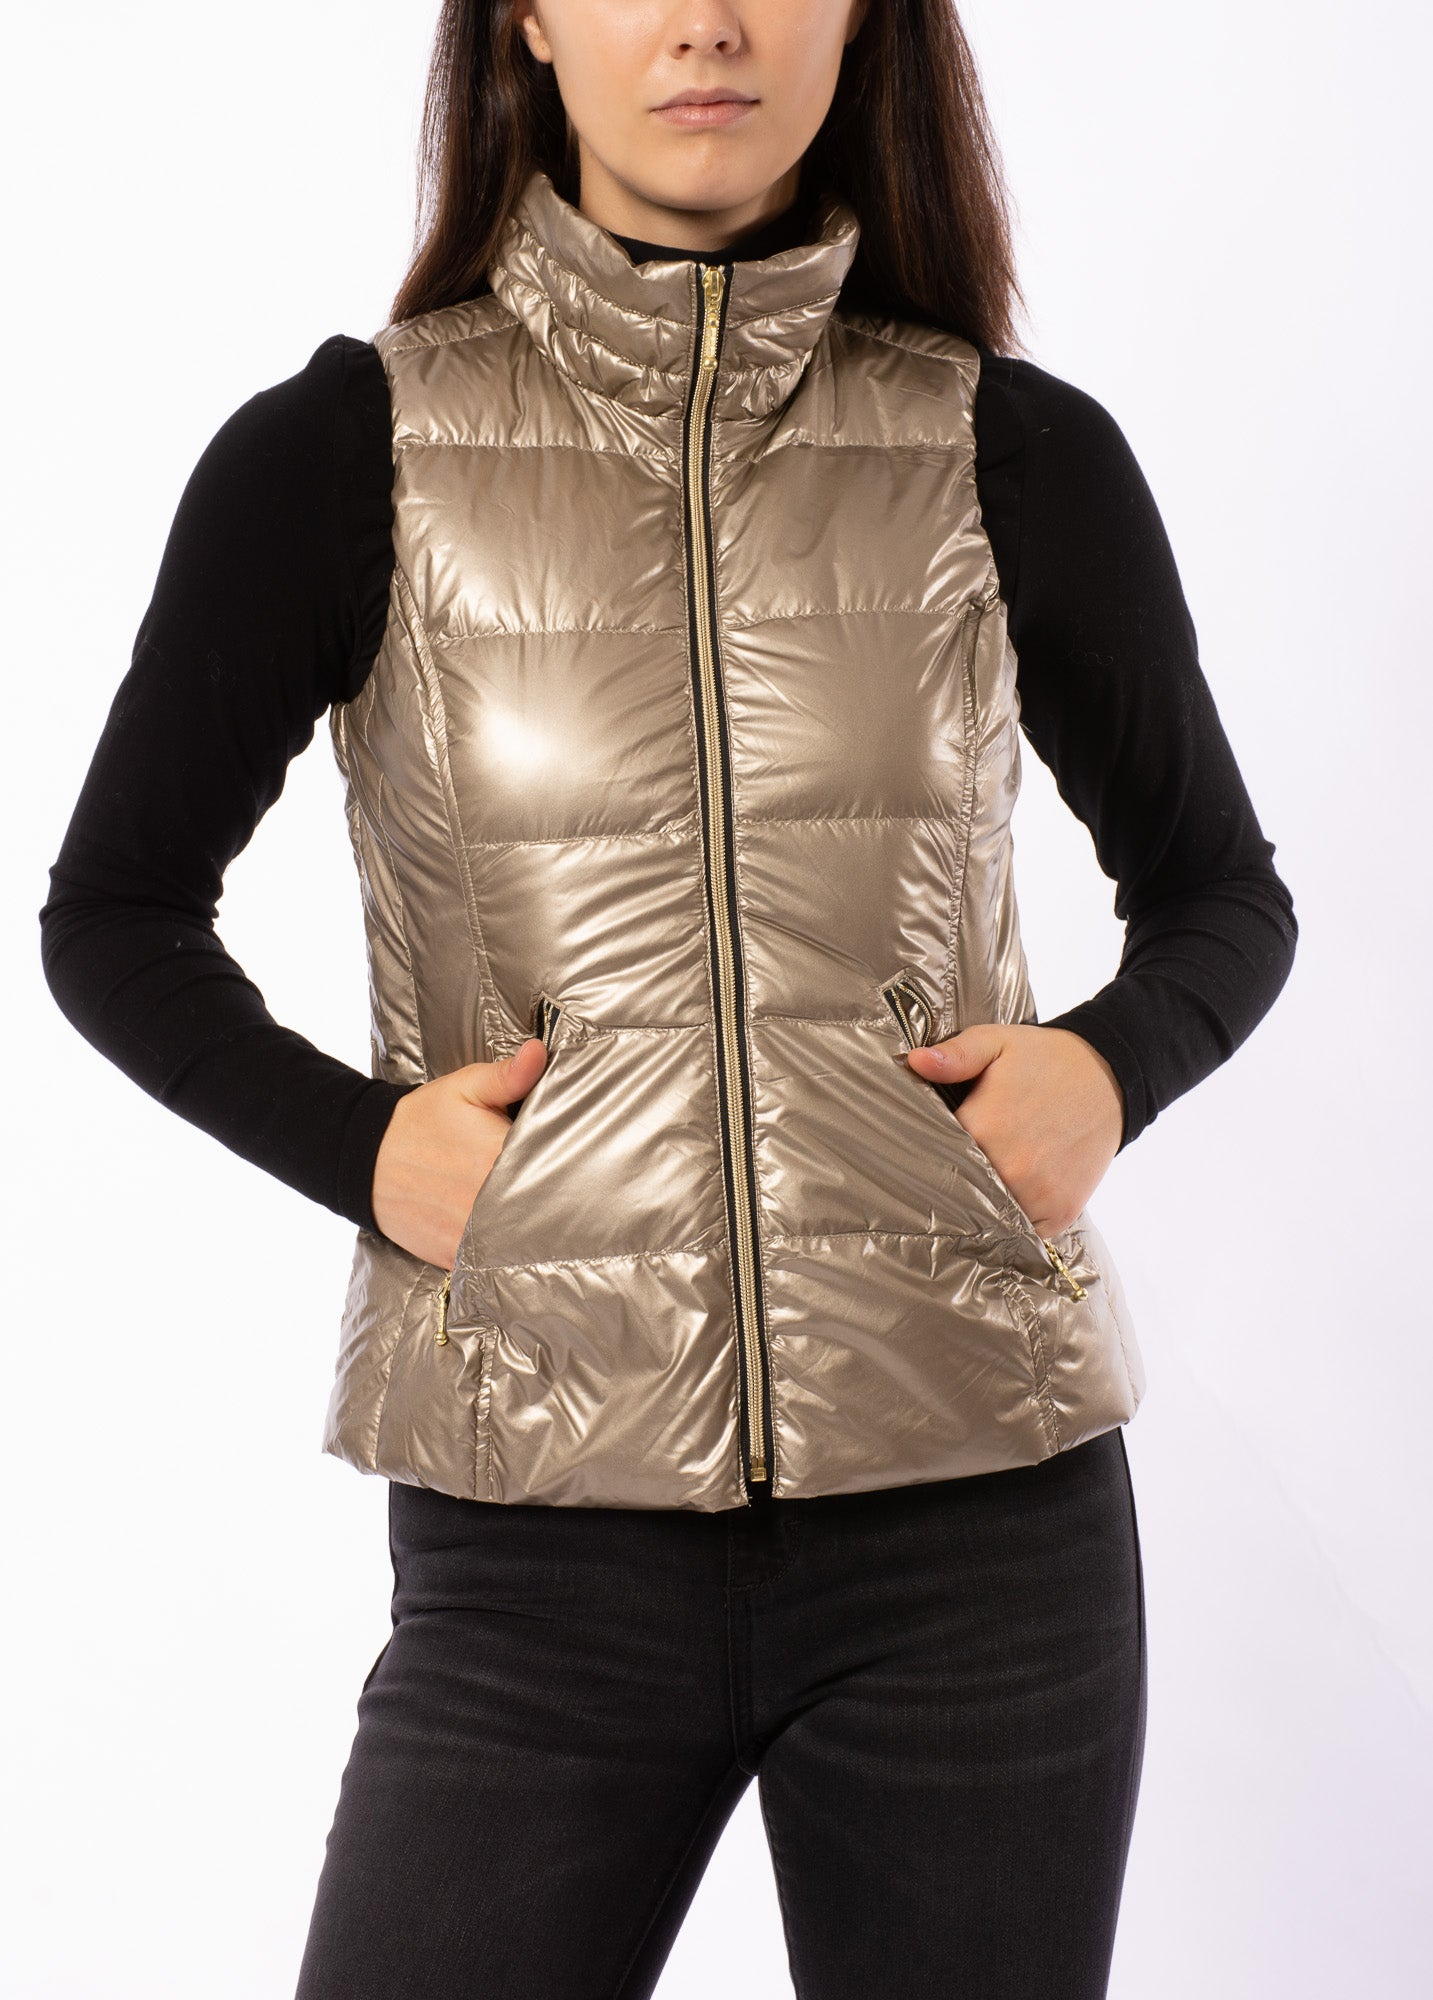 Anorak - Short Puffy Vest (50172CA, Metallic Gold)